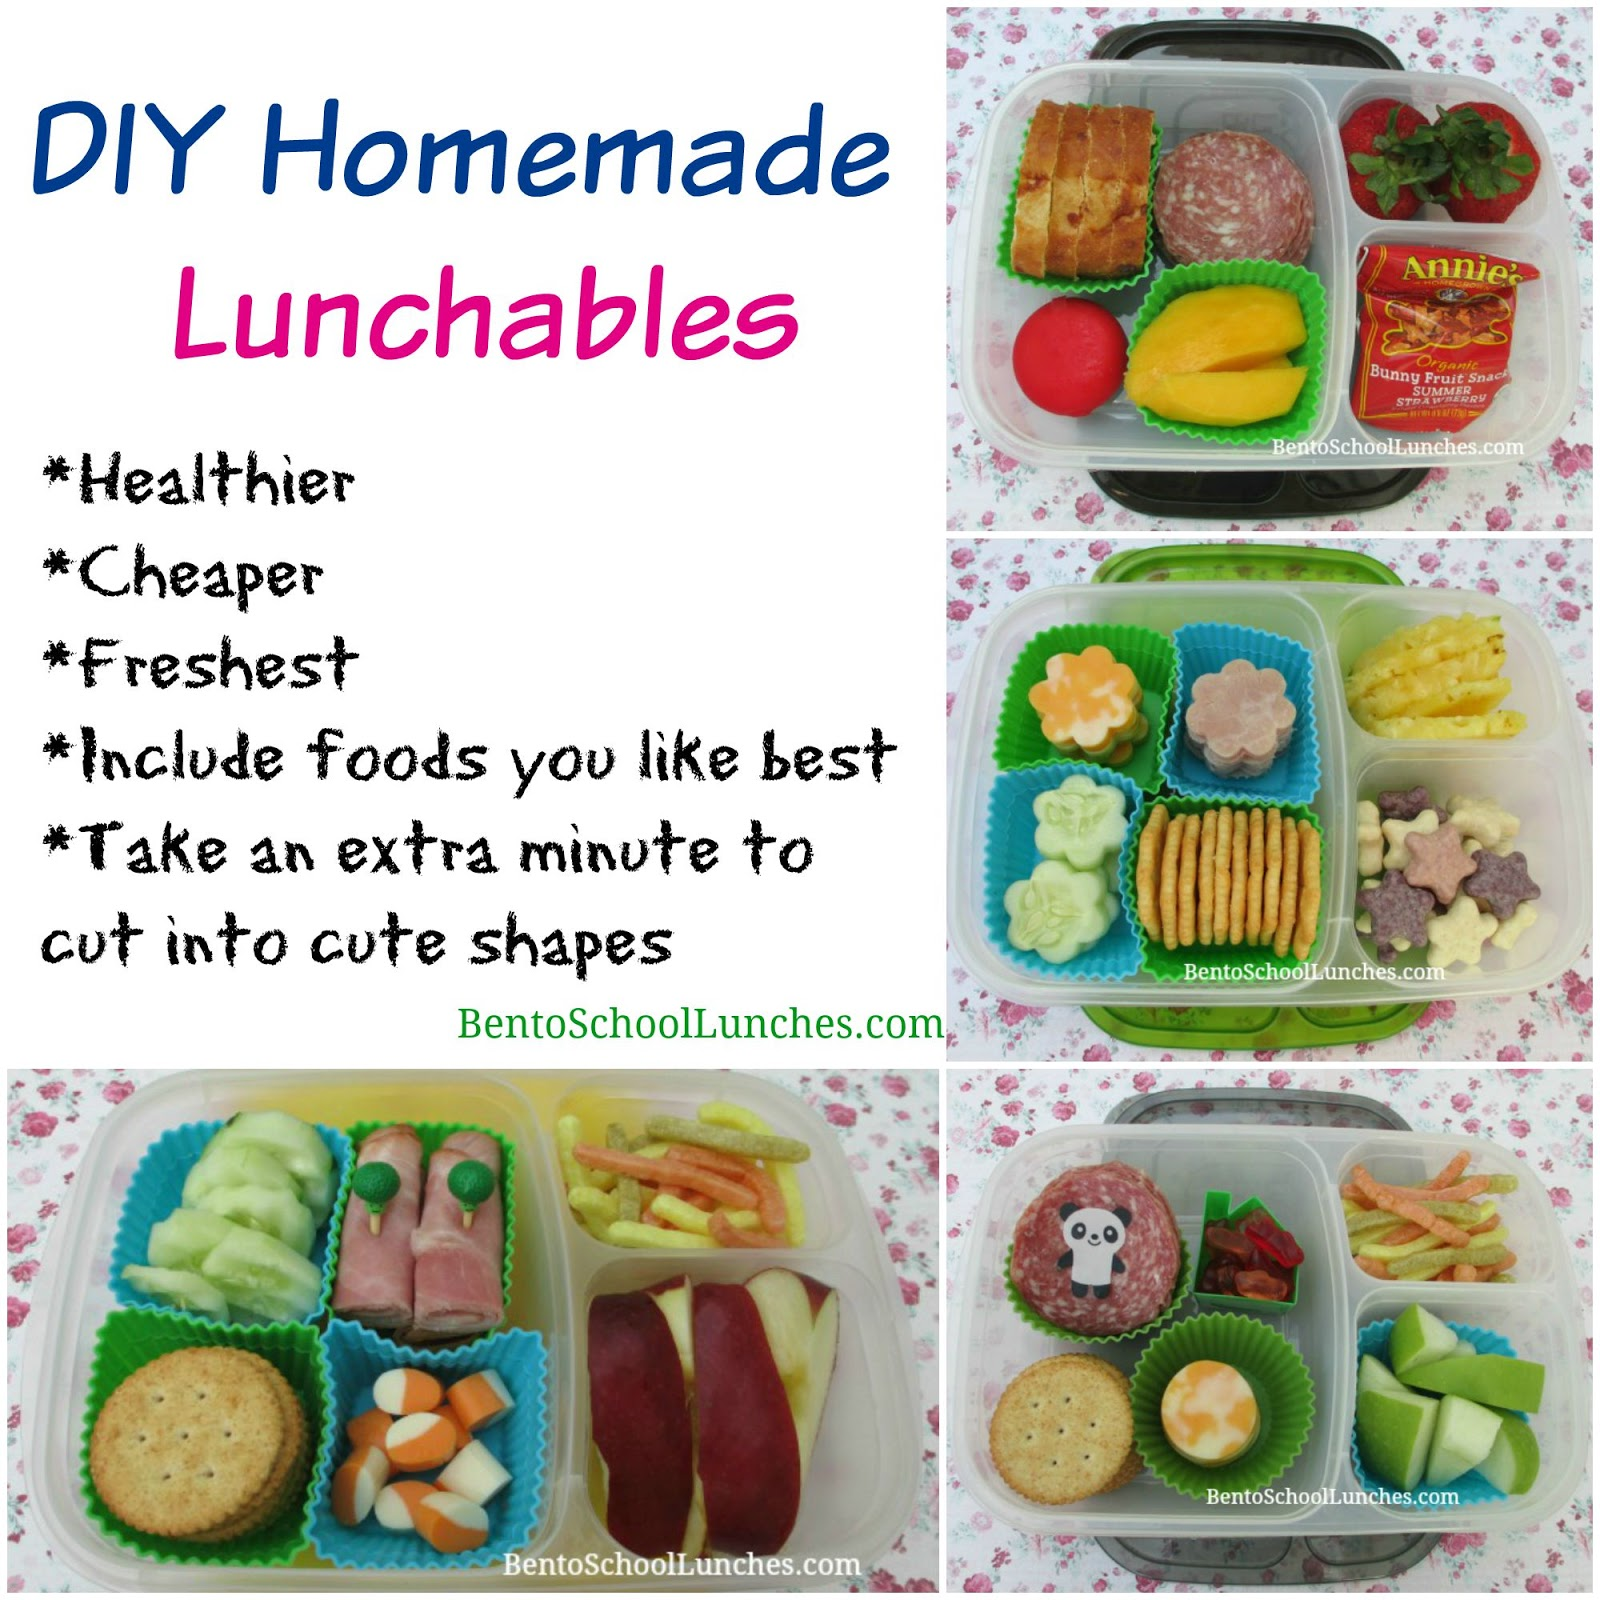 bento school lunches 4 diy homemade lunchables. Black Bedroom Furniture Sets. Home Design Ideas